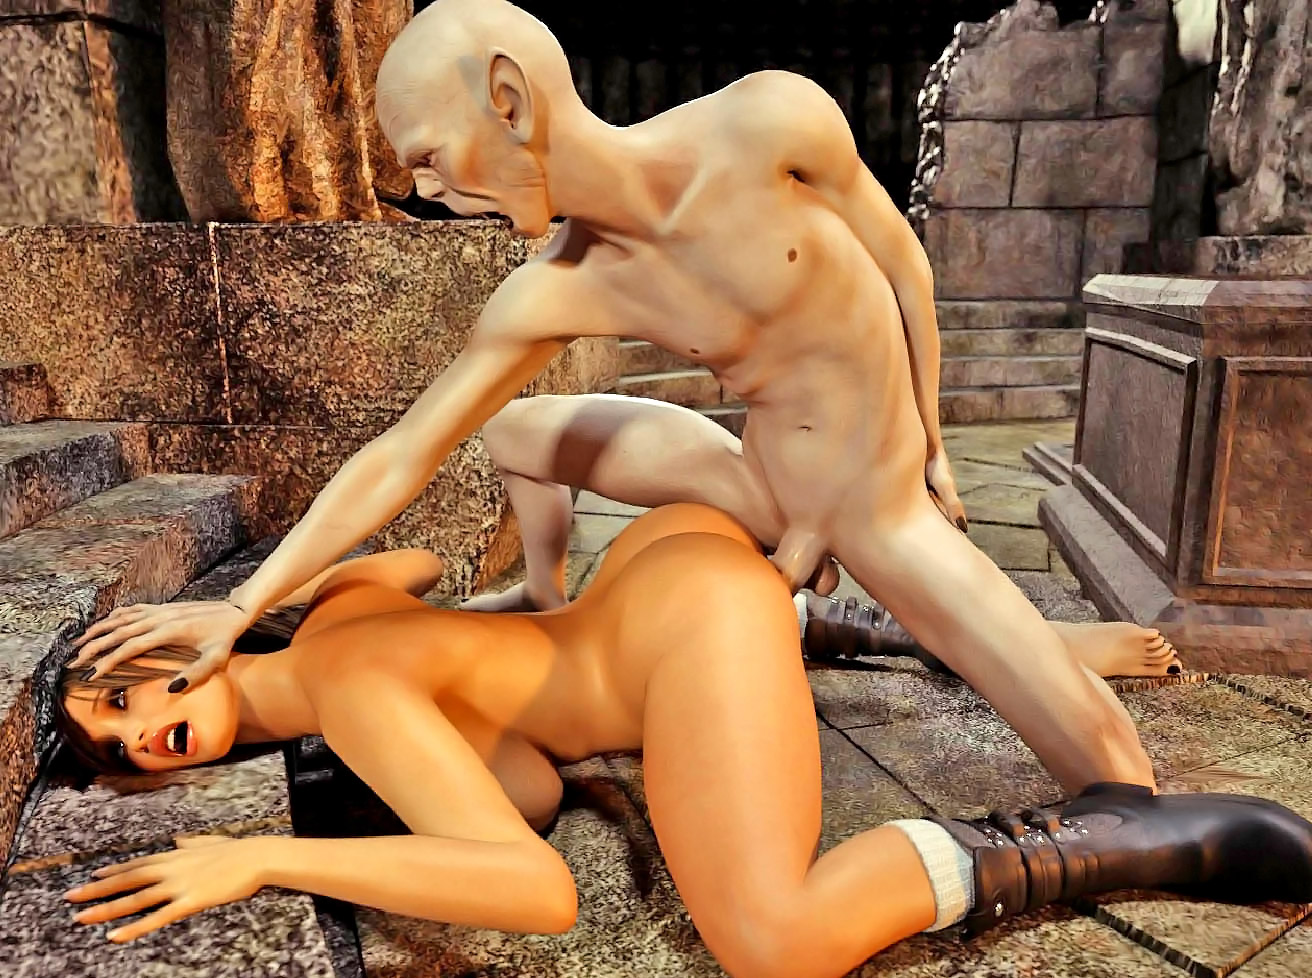 3d sex of tomb rider photos sexual film